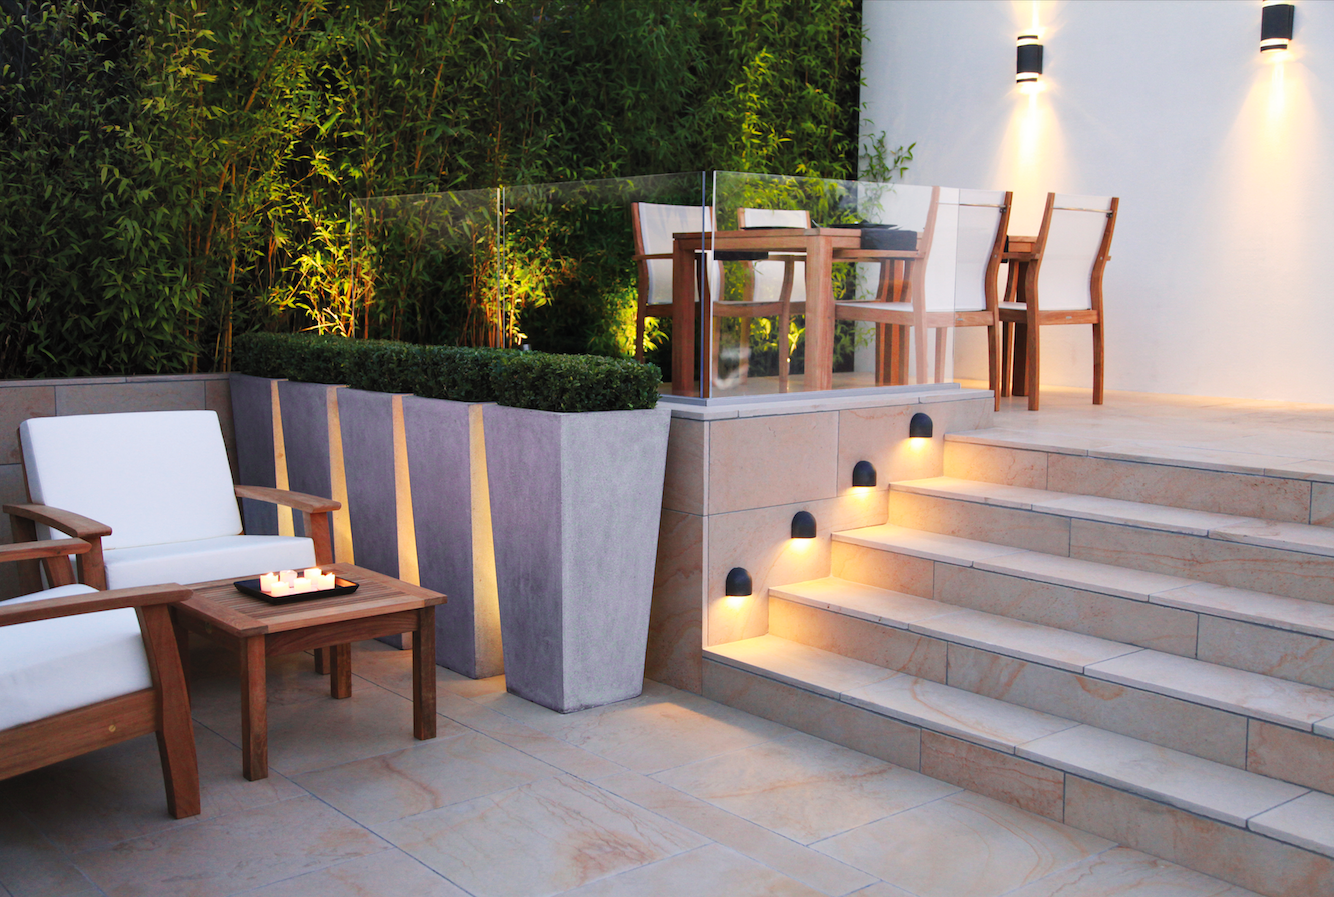 Use Our Natural Stone Supply for Your Next Patio and Walkway Project in Harrisburg, PA